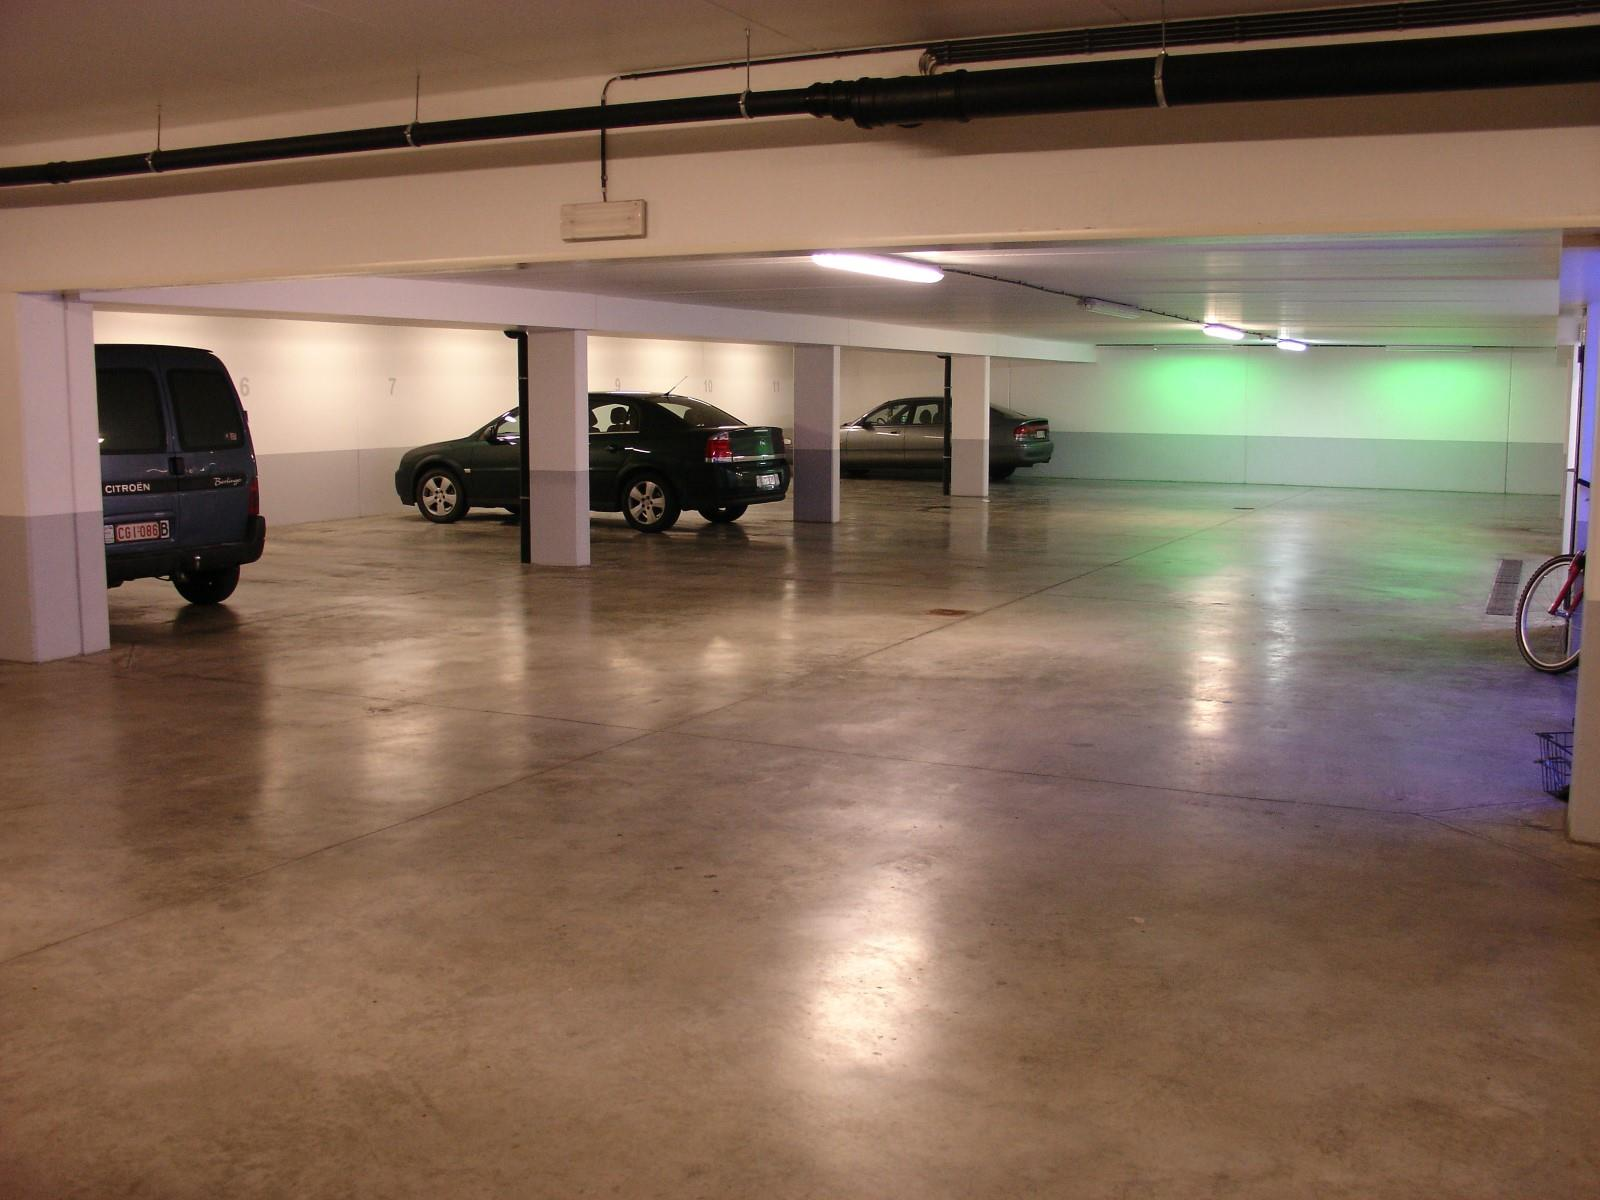 Inside parking - Woluwe-Saint-Pierre - #4199550-1